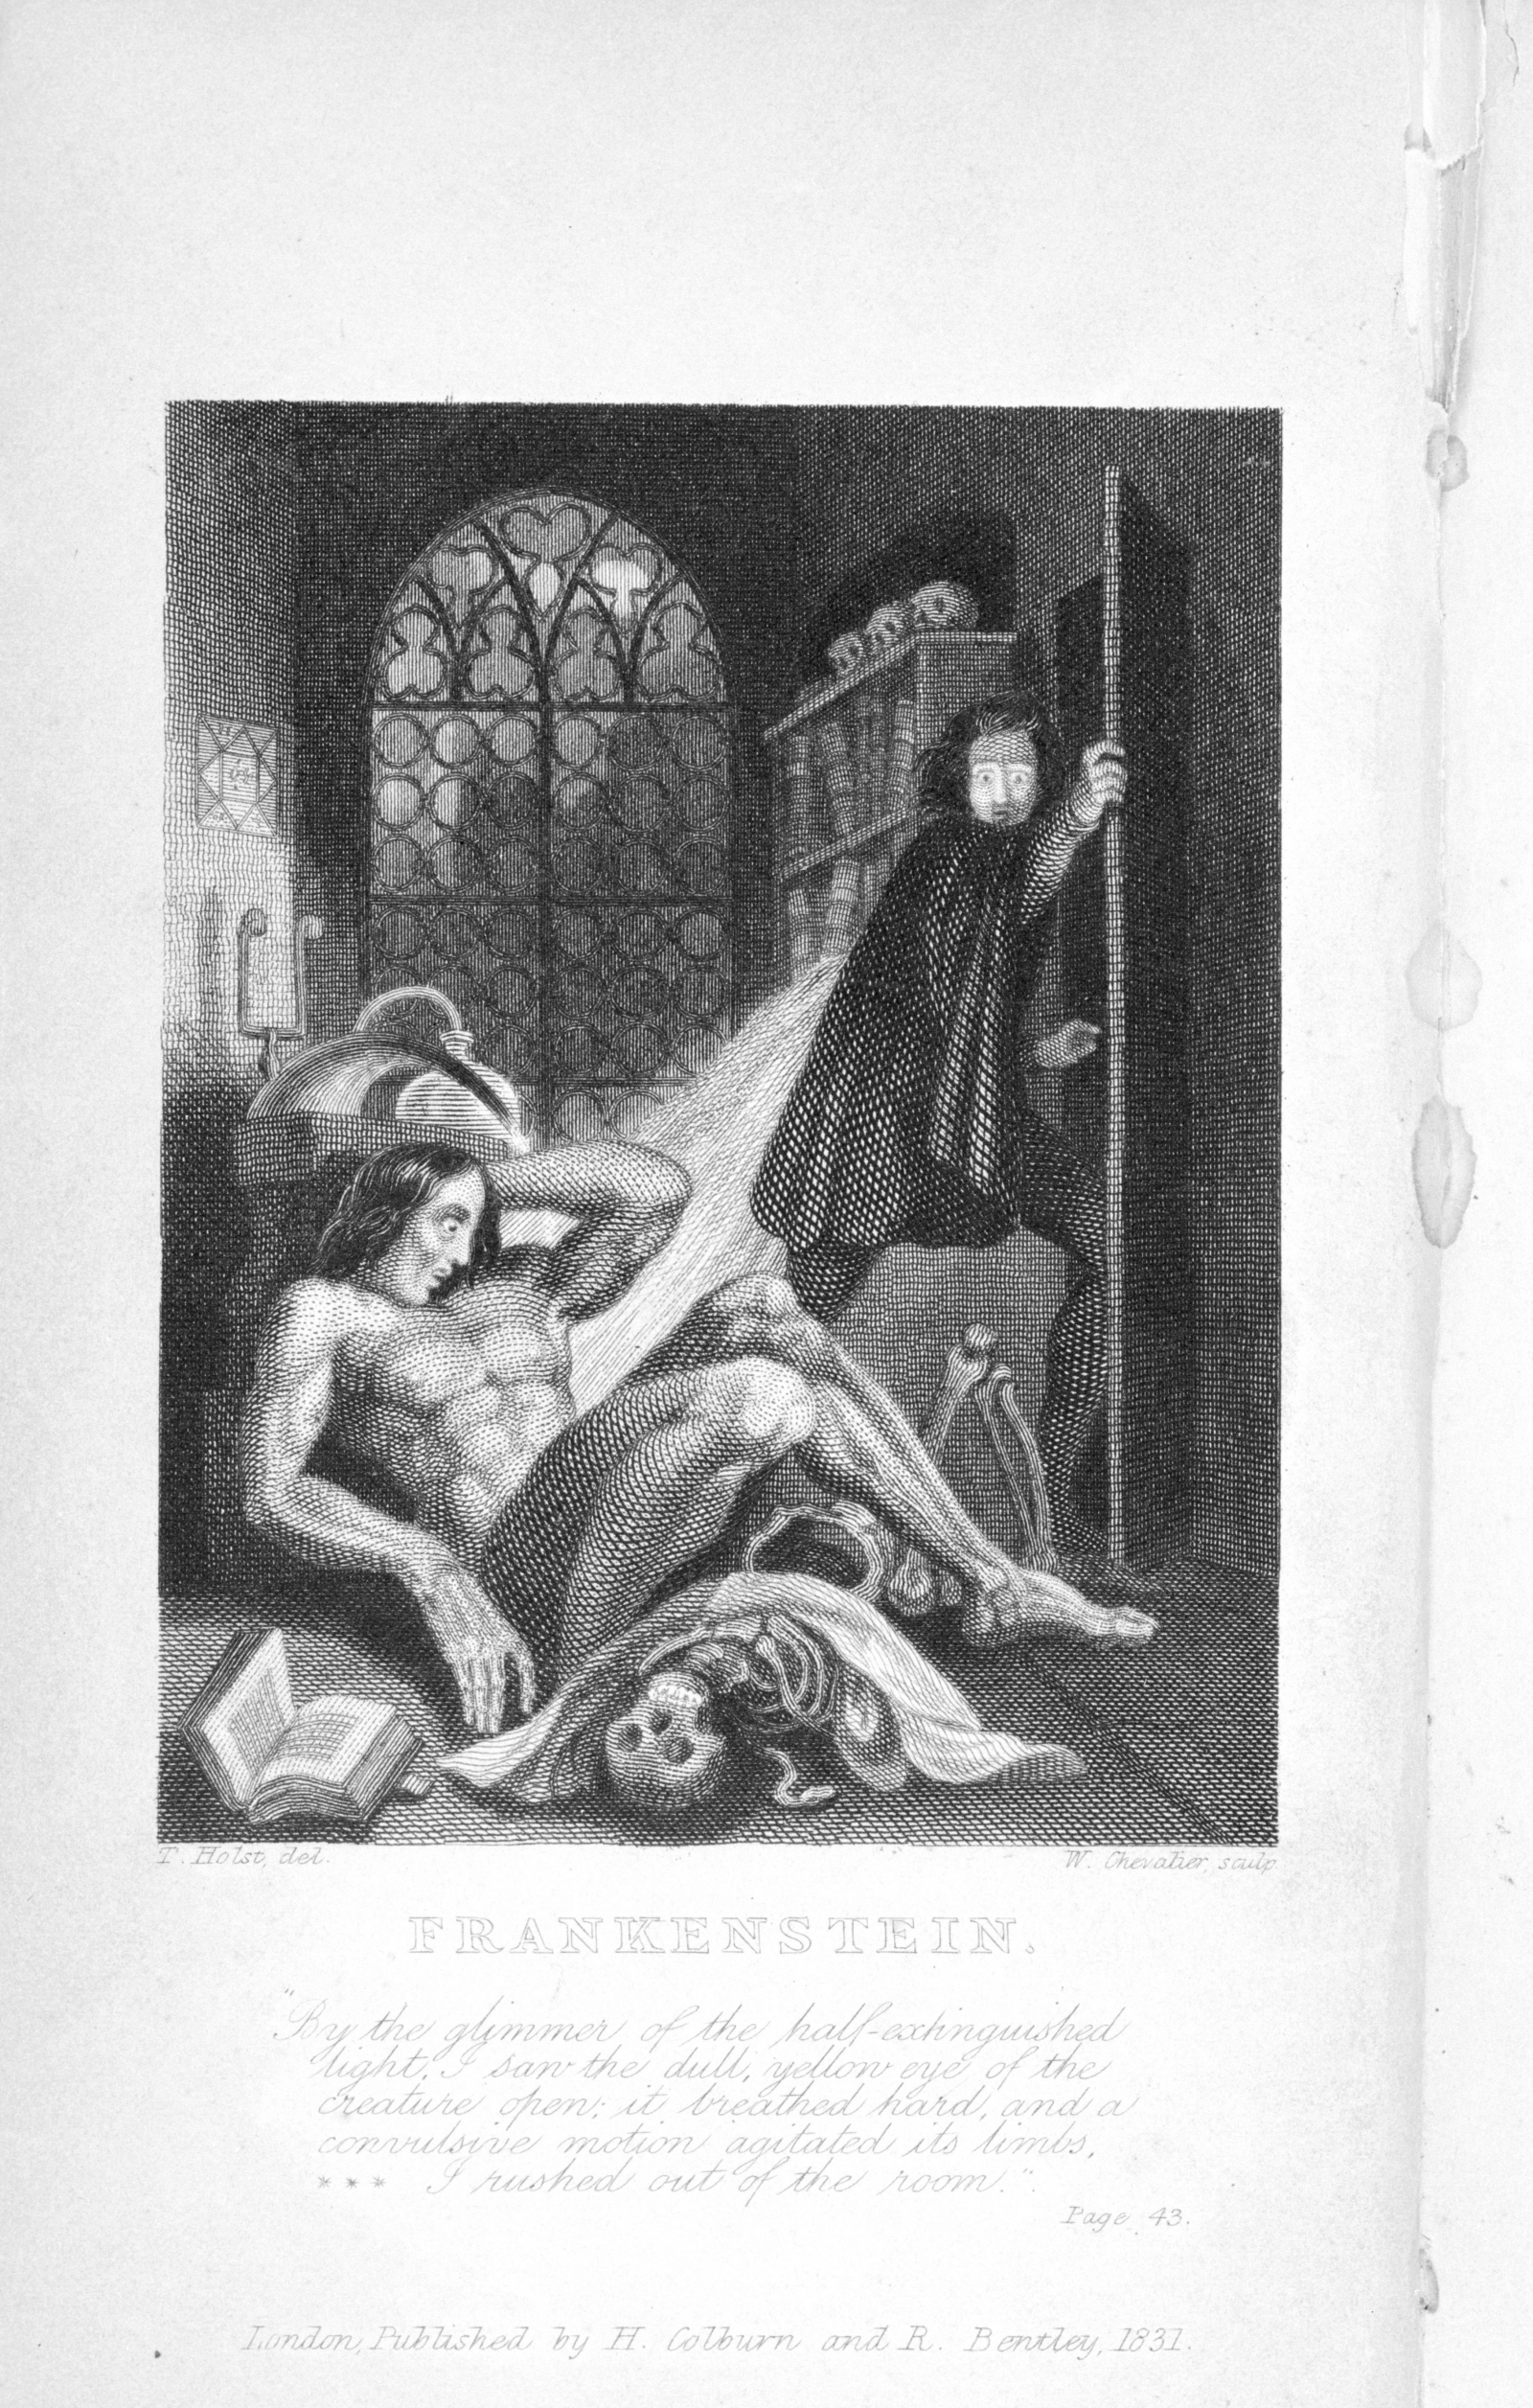 First illustration of Frankenstein's monster. Mary Shelley, Frankenstein, or, The Modern Prometheus. London, 1831.